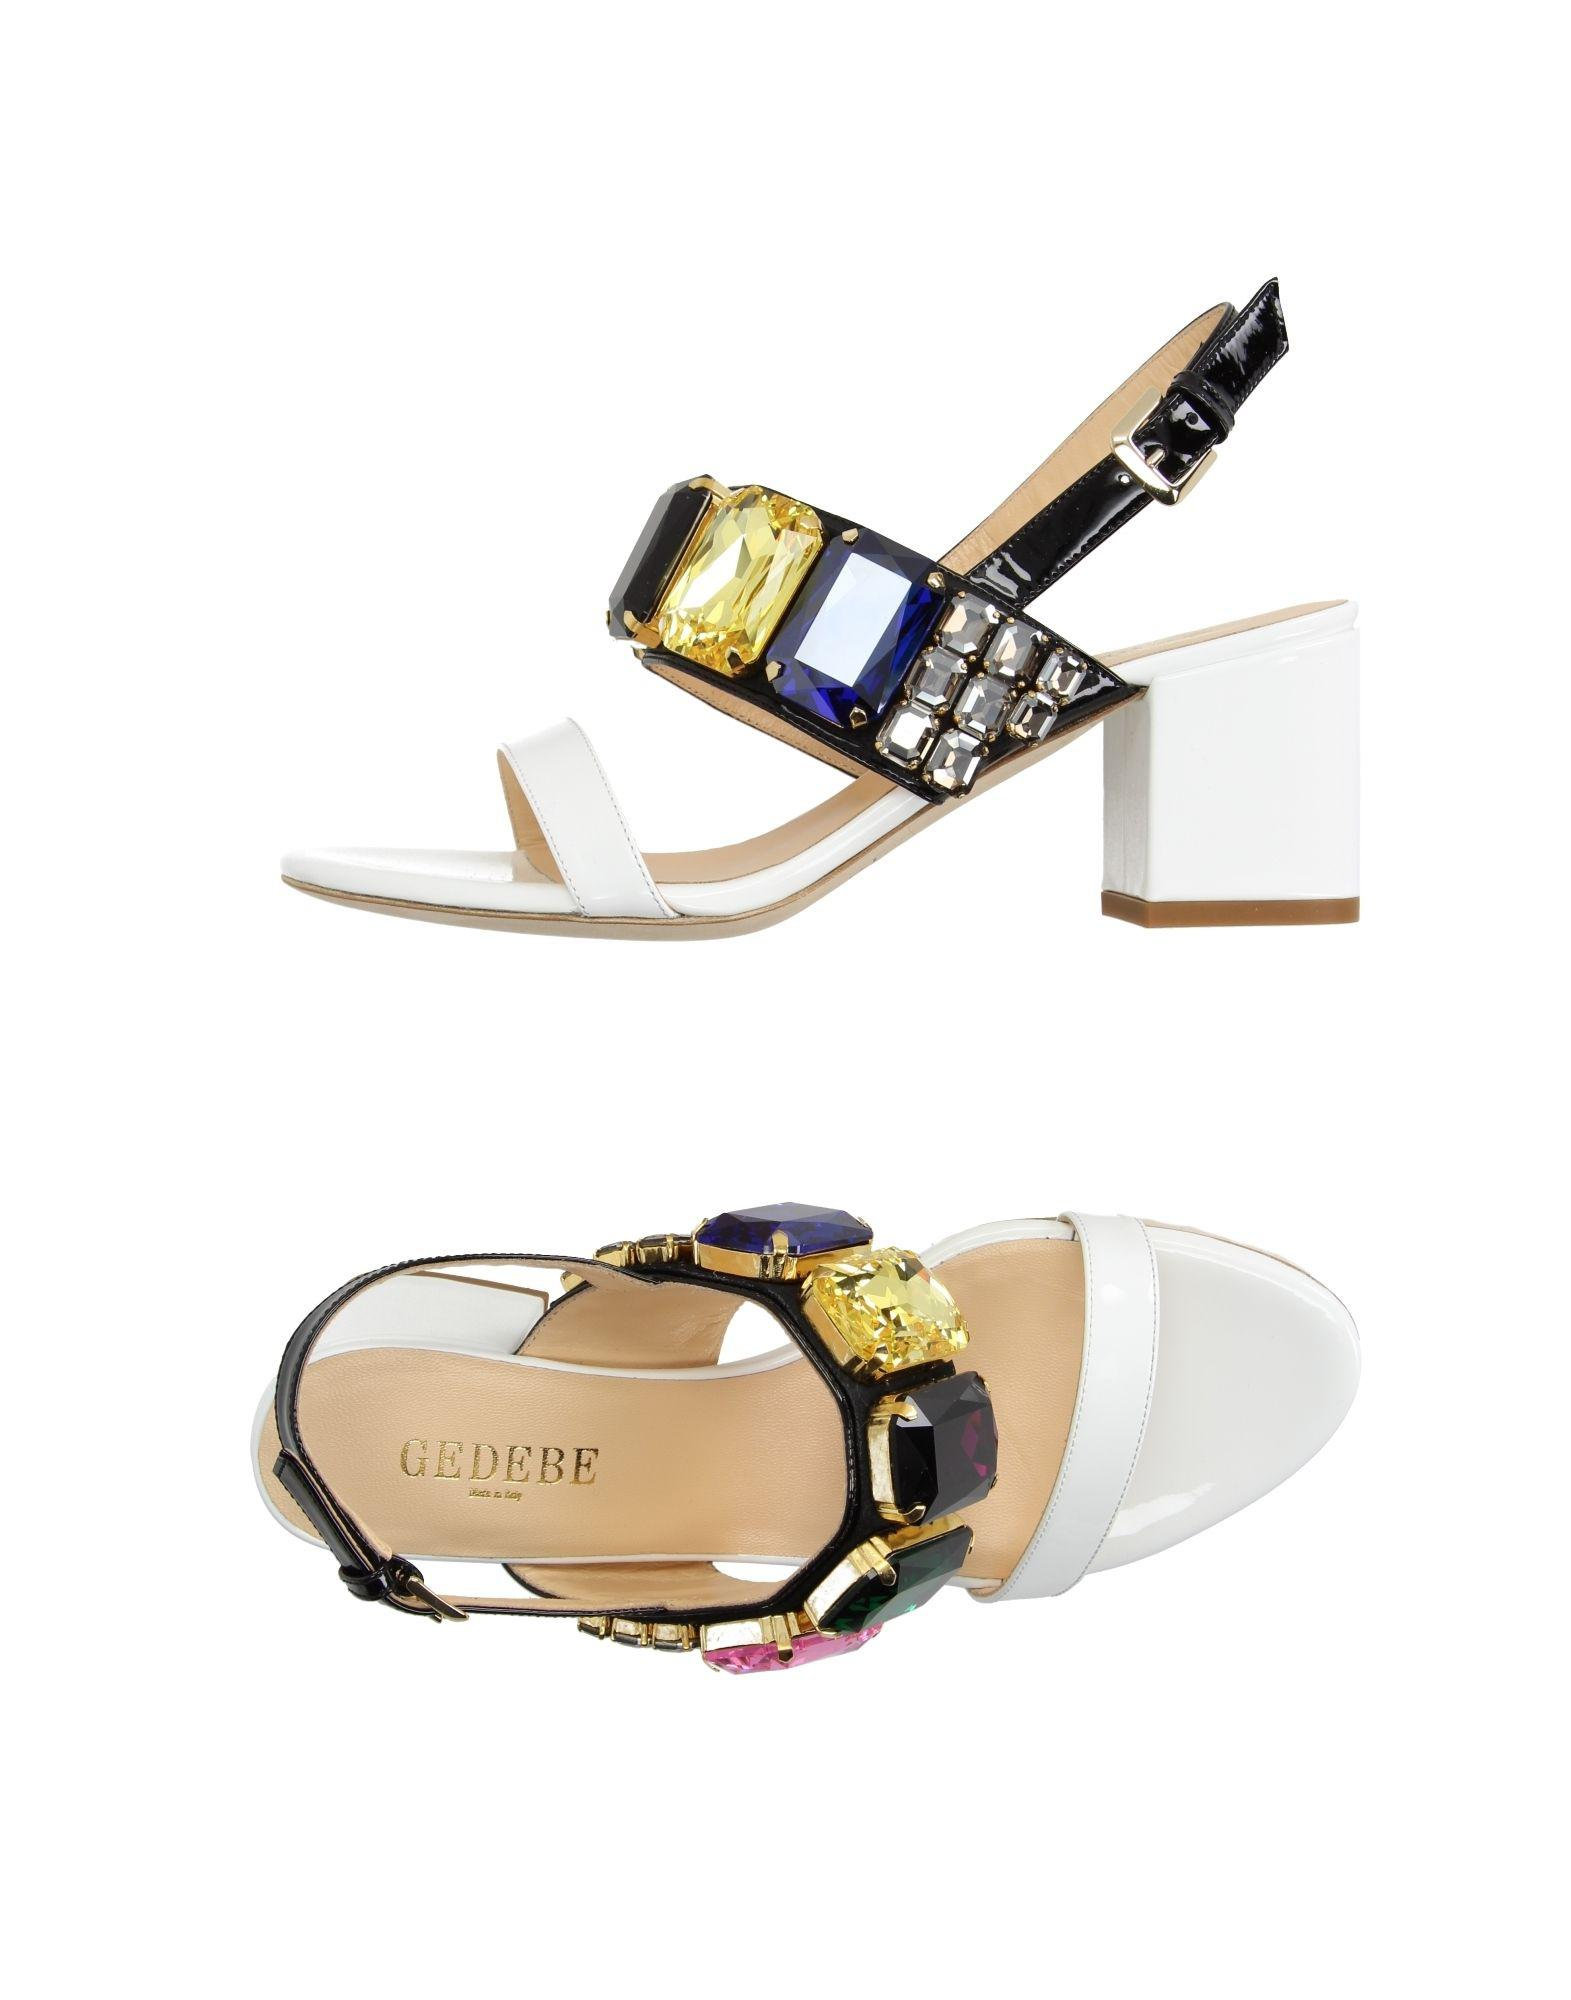 af0d07dab12 Lyst - Gedebe Sandals in White